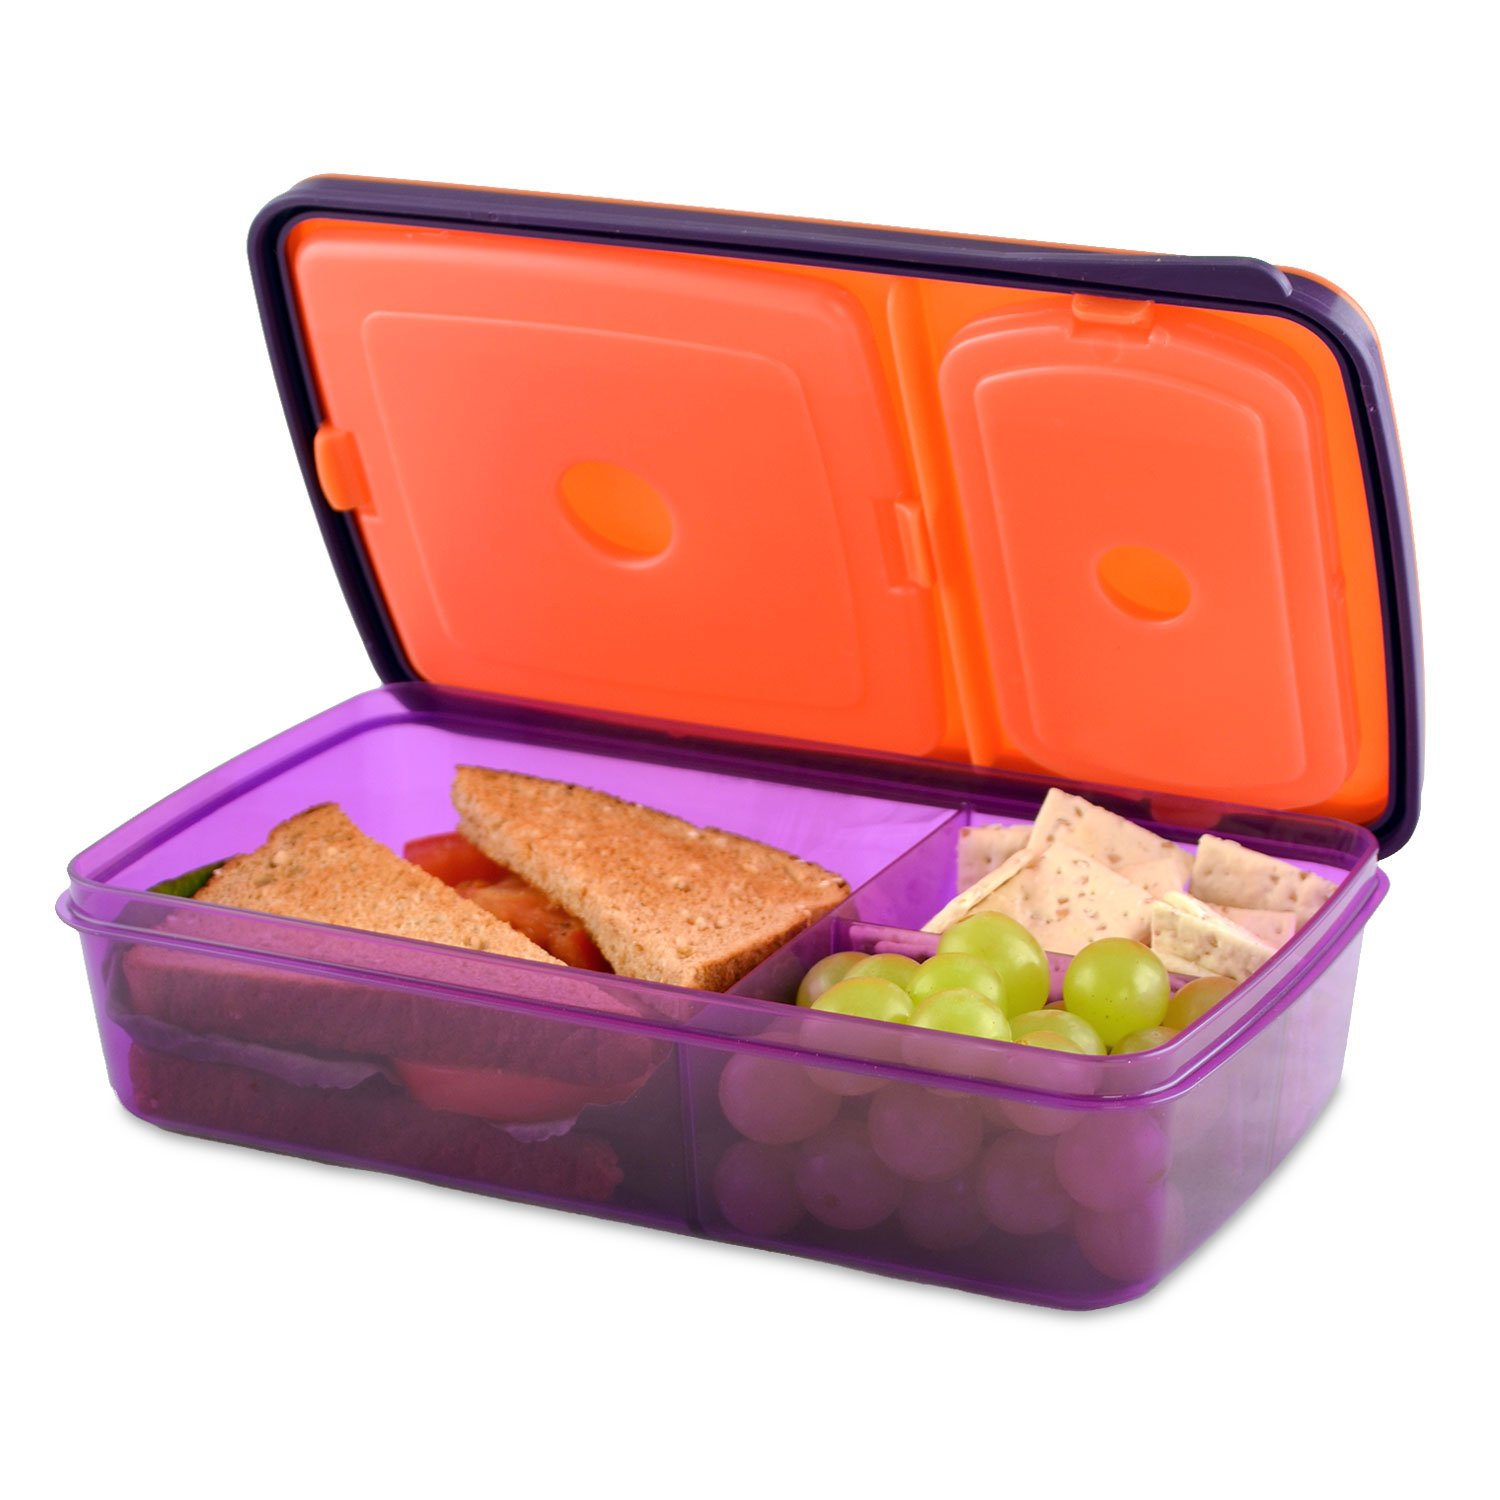 fit fresh soft touch bento lunch box 3 compartments kids or adults ebay. Black Bedroom Furniture Sets. Home Design Ideas